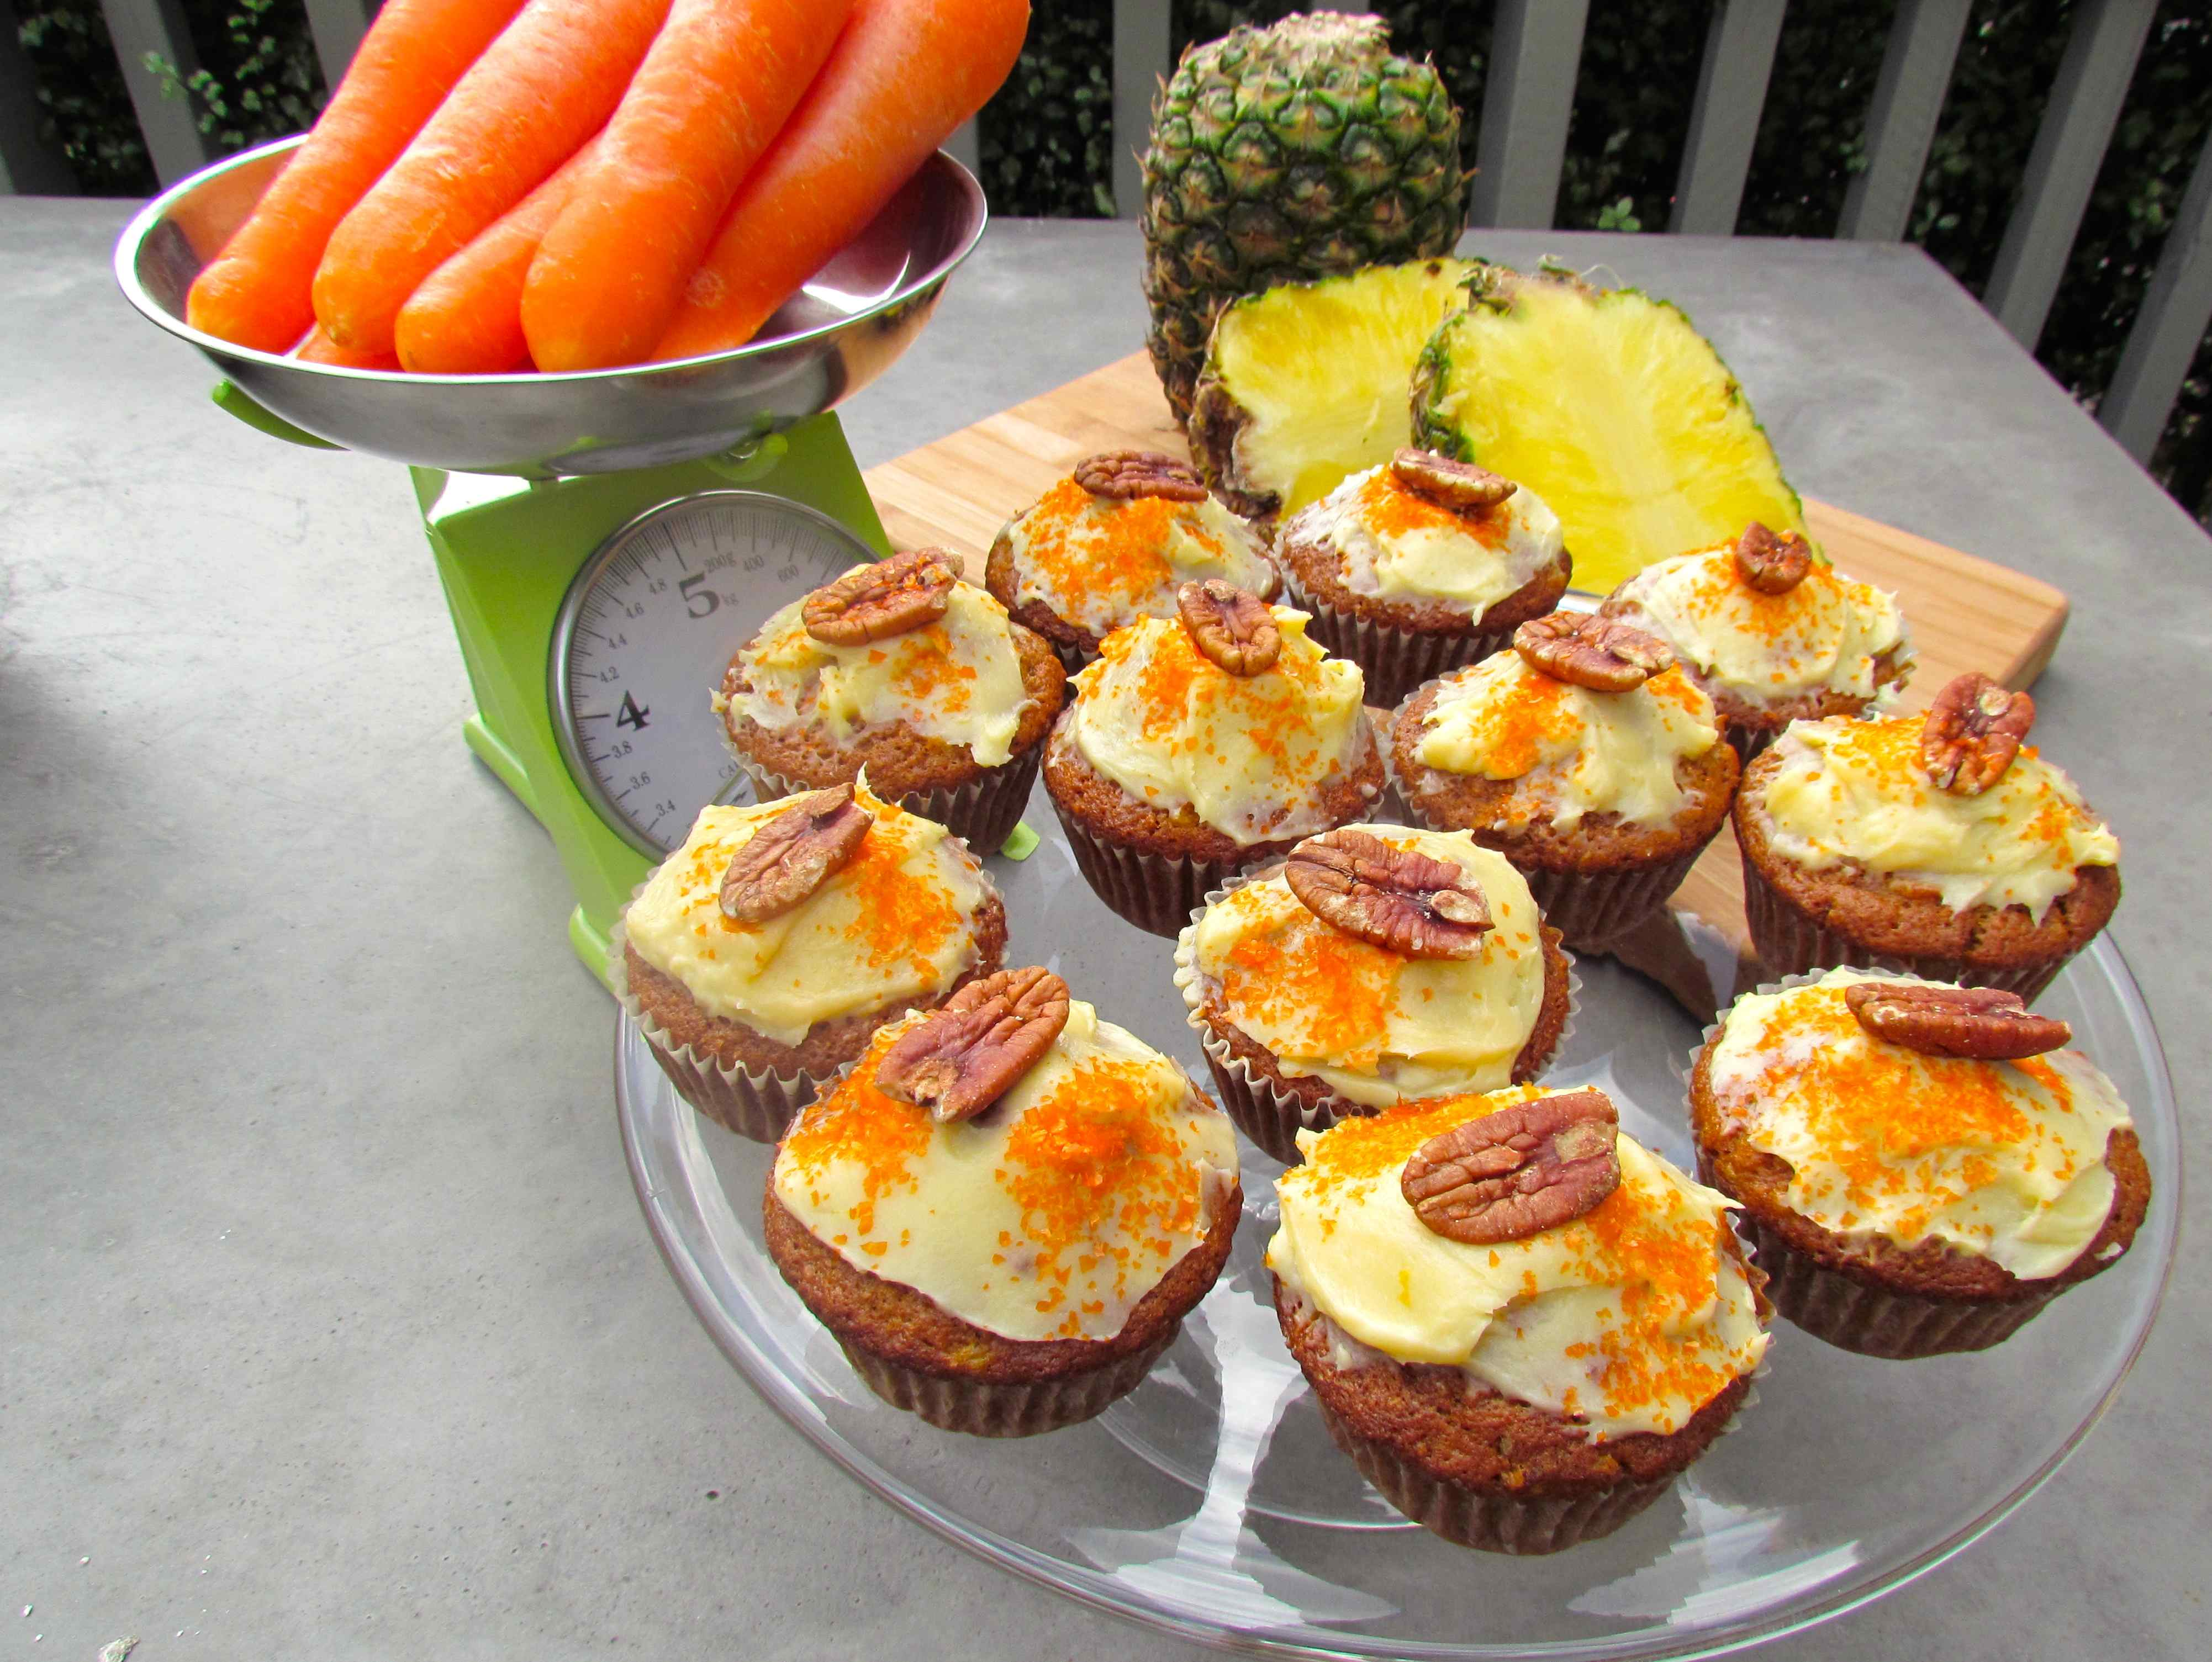 Sweet Pineapple and Carrot Cupcakes